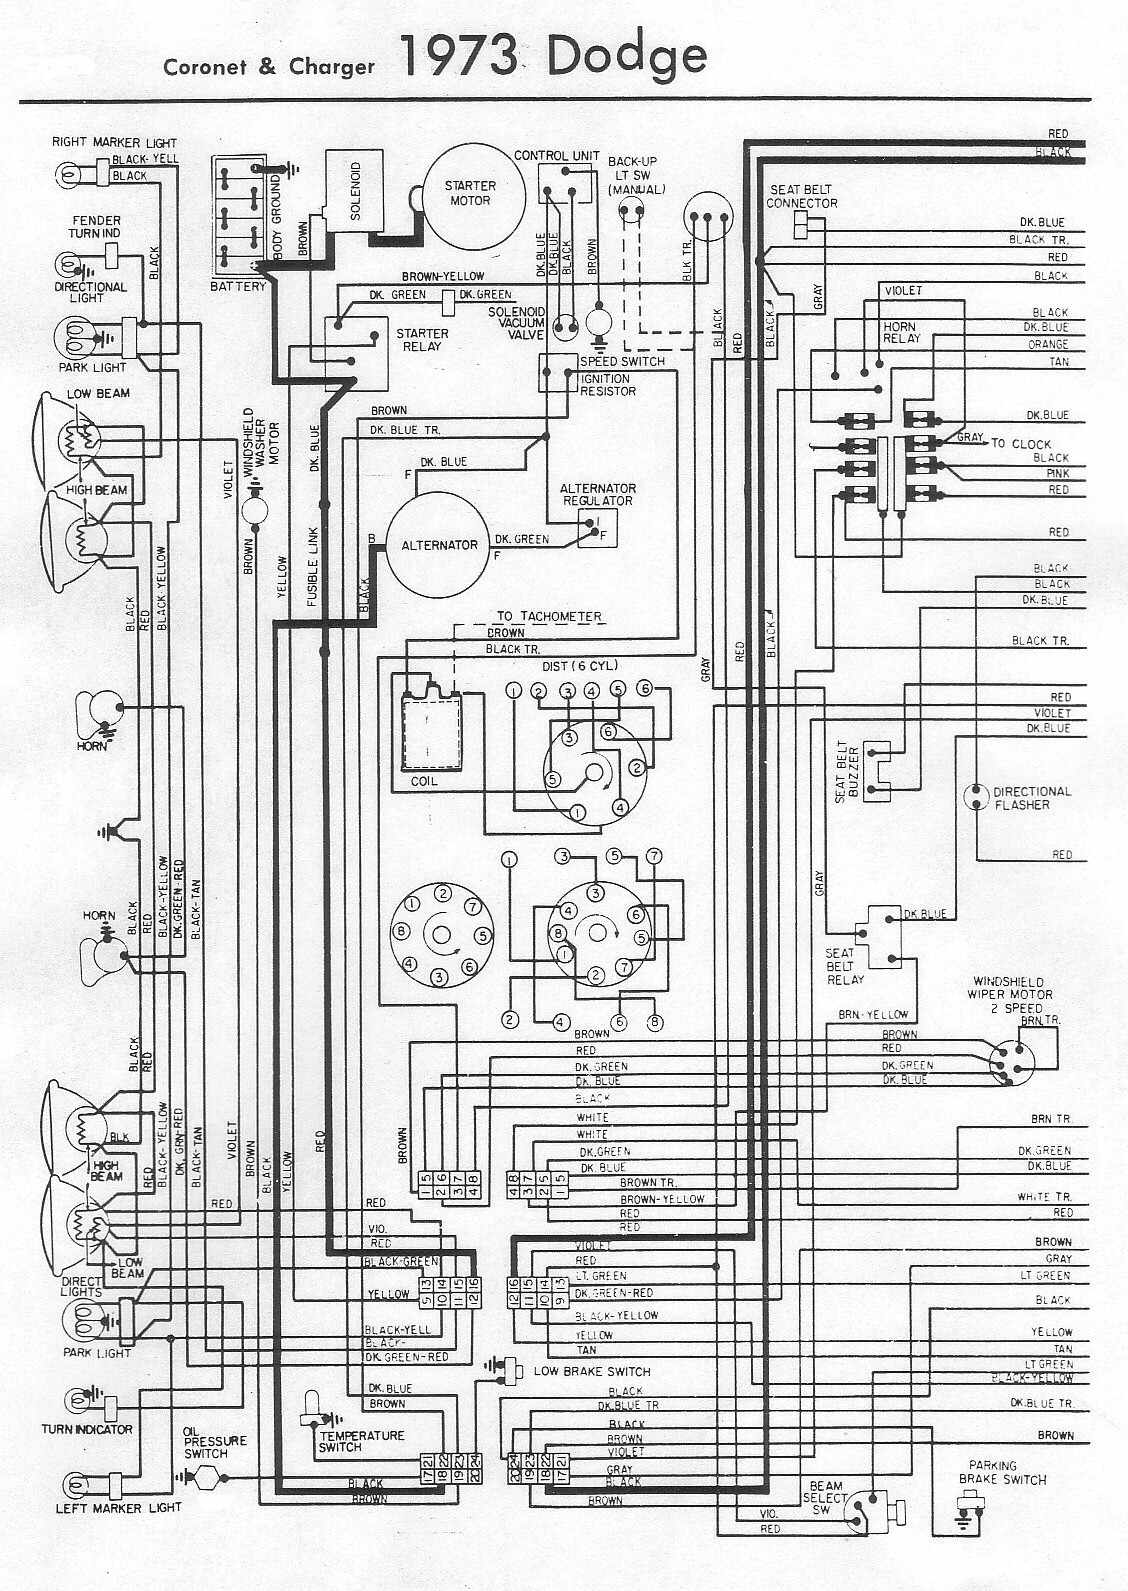 Citroen C2 Vtr Wiring Diagram Library Berlingo Multispace Trusted Electric Space Heater Saxo